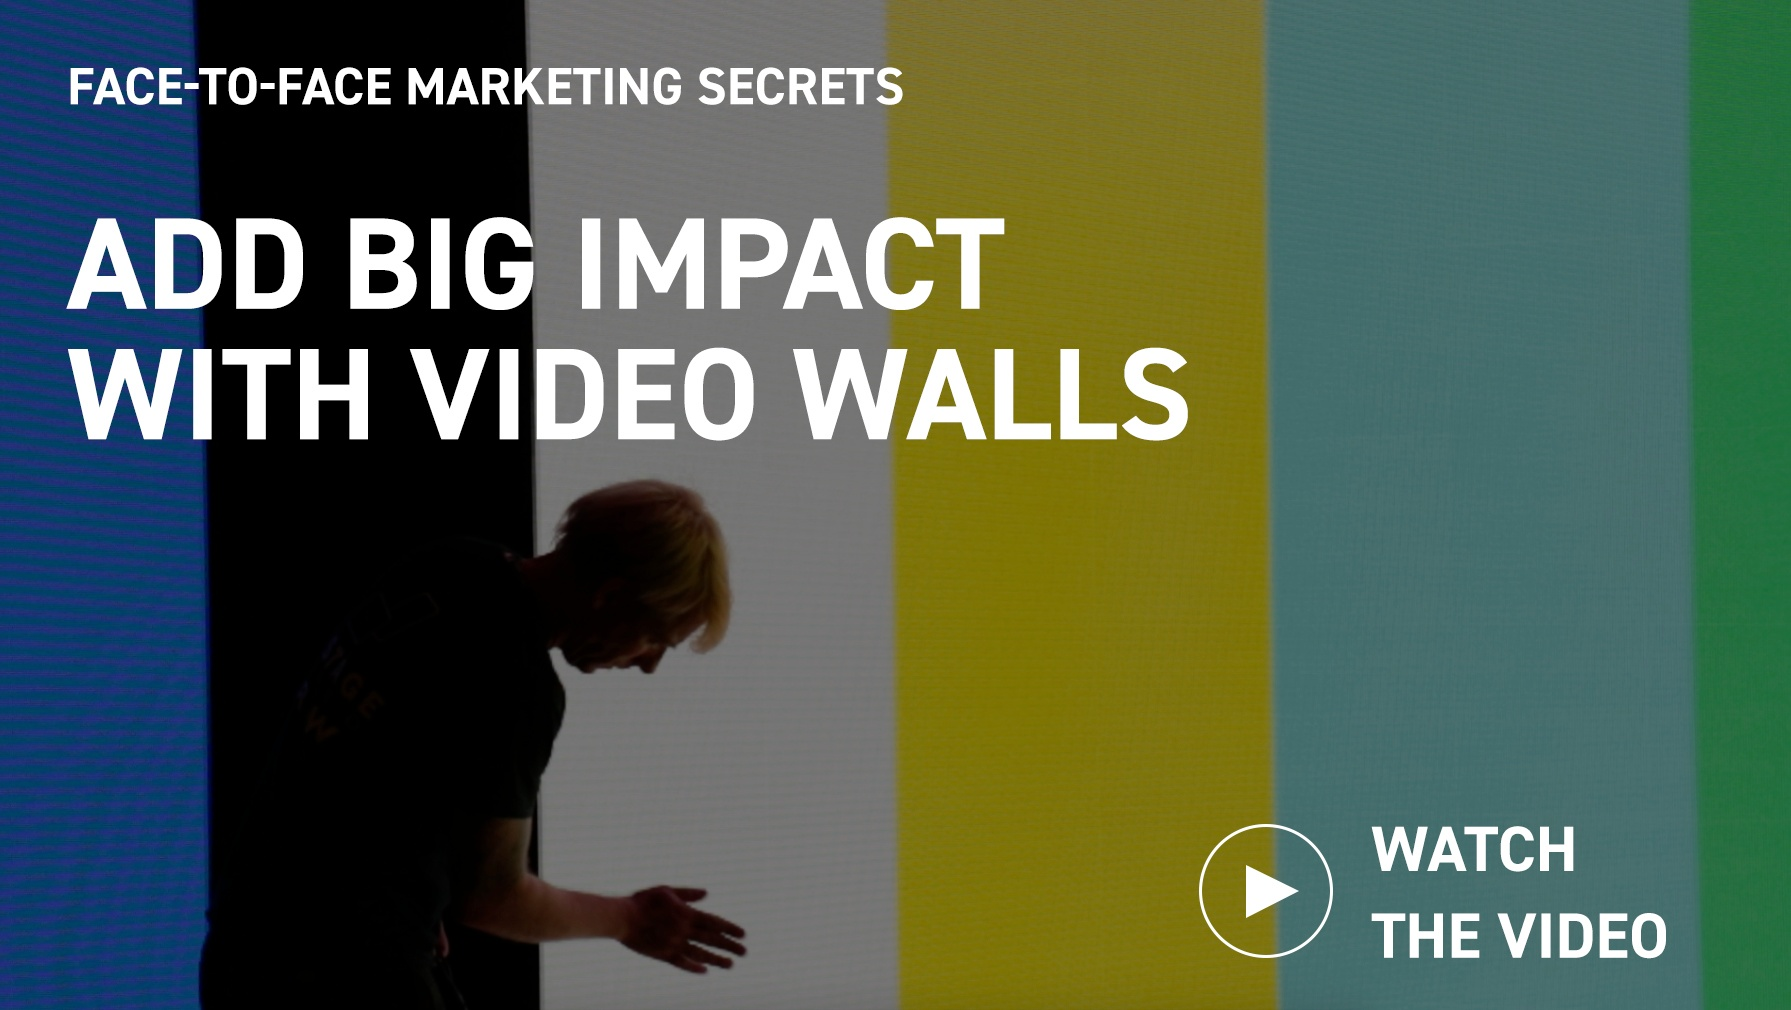 Introducing H&P's Video Series: Face-to-Face Marketing Secrets